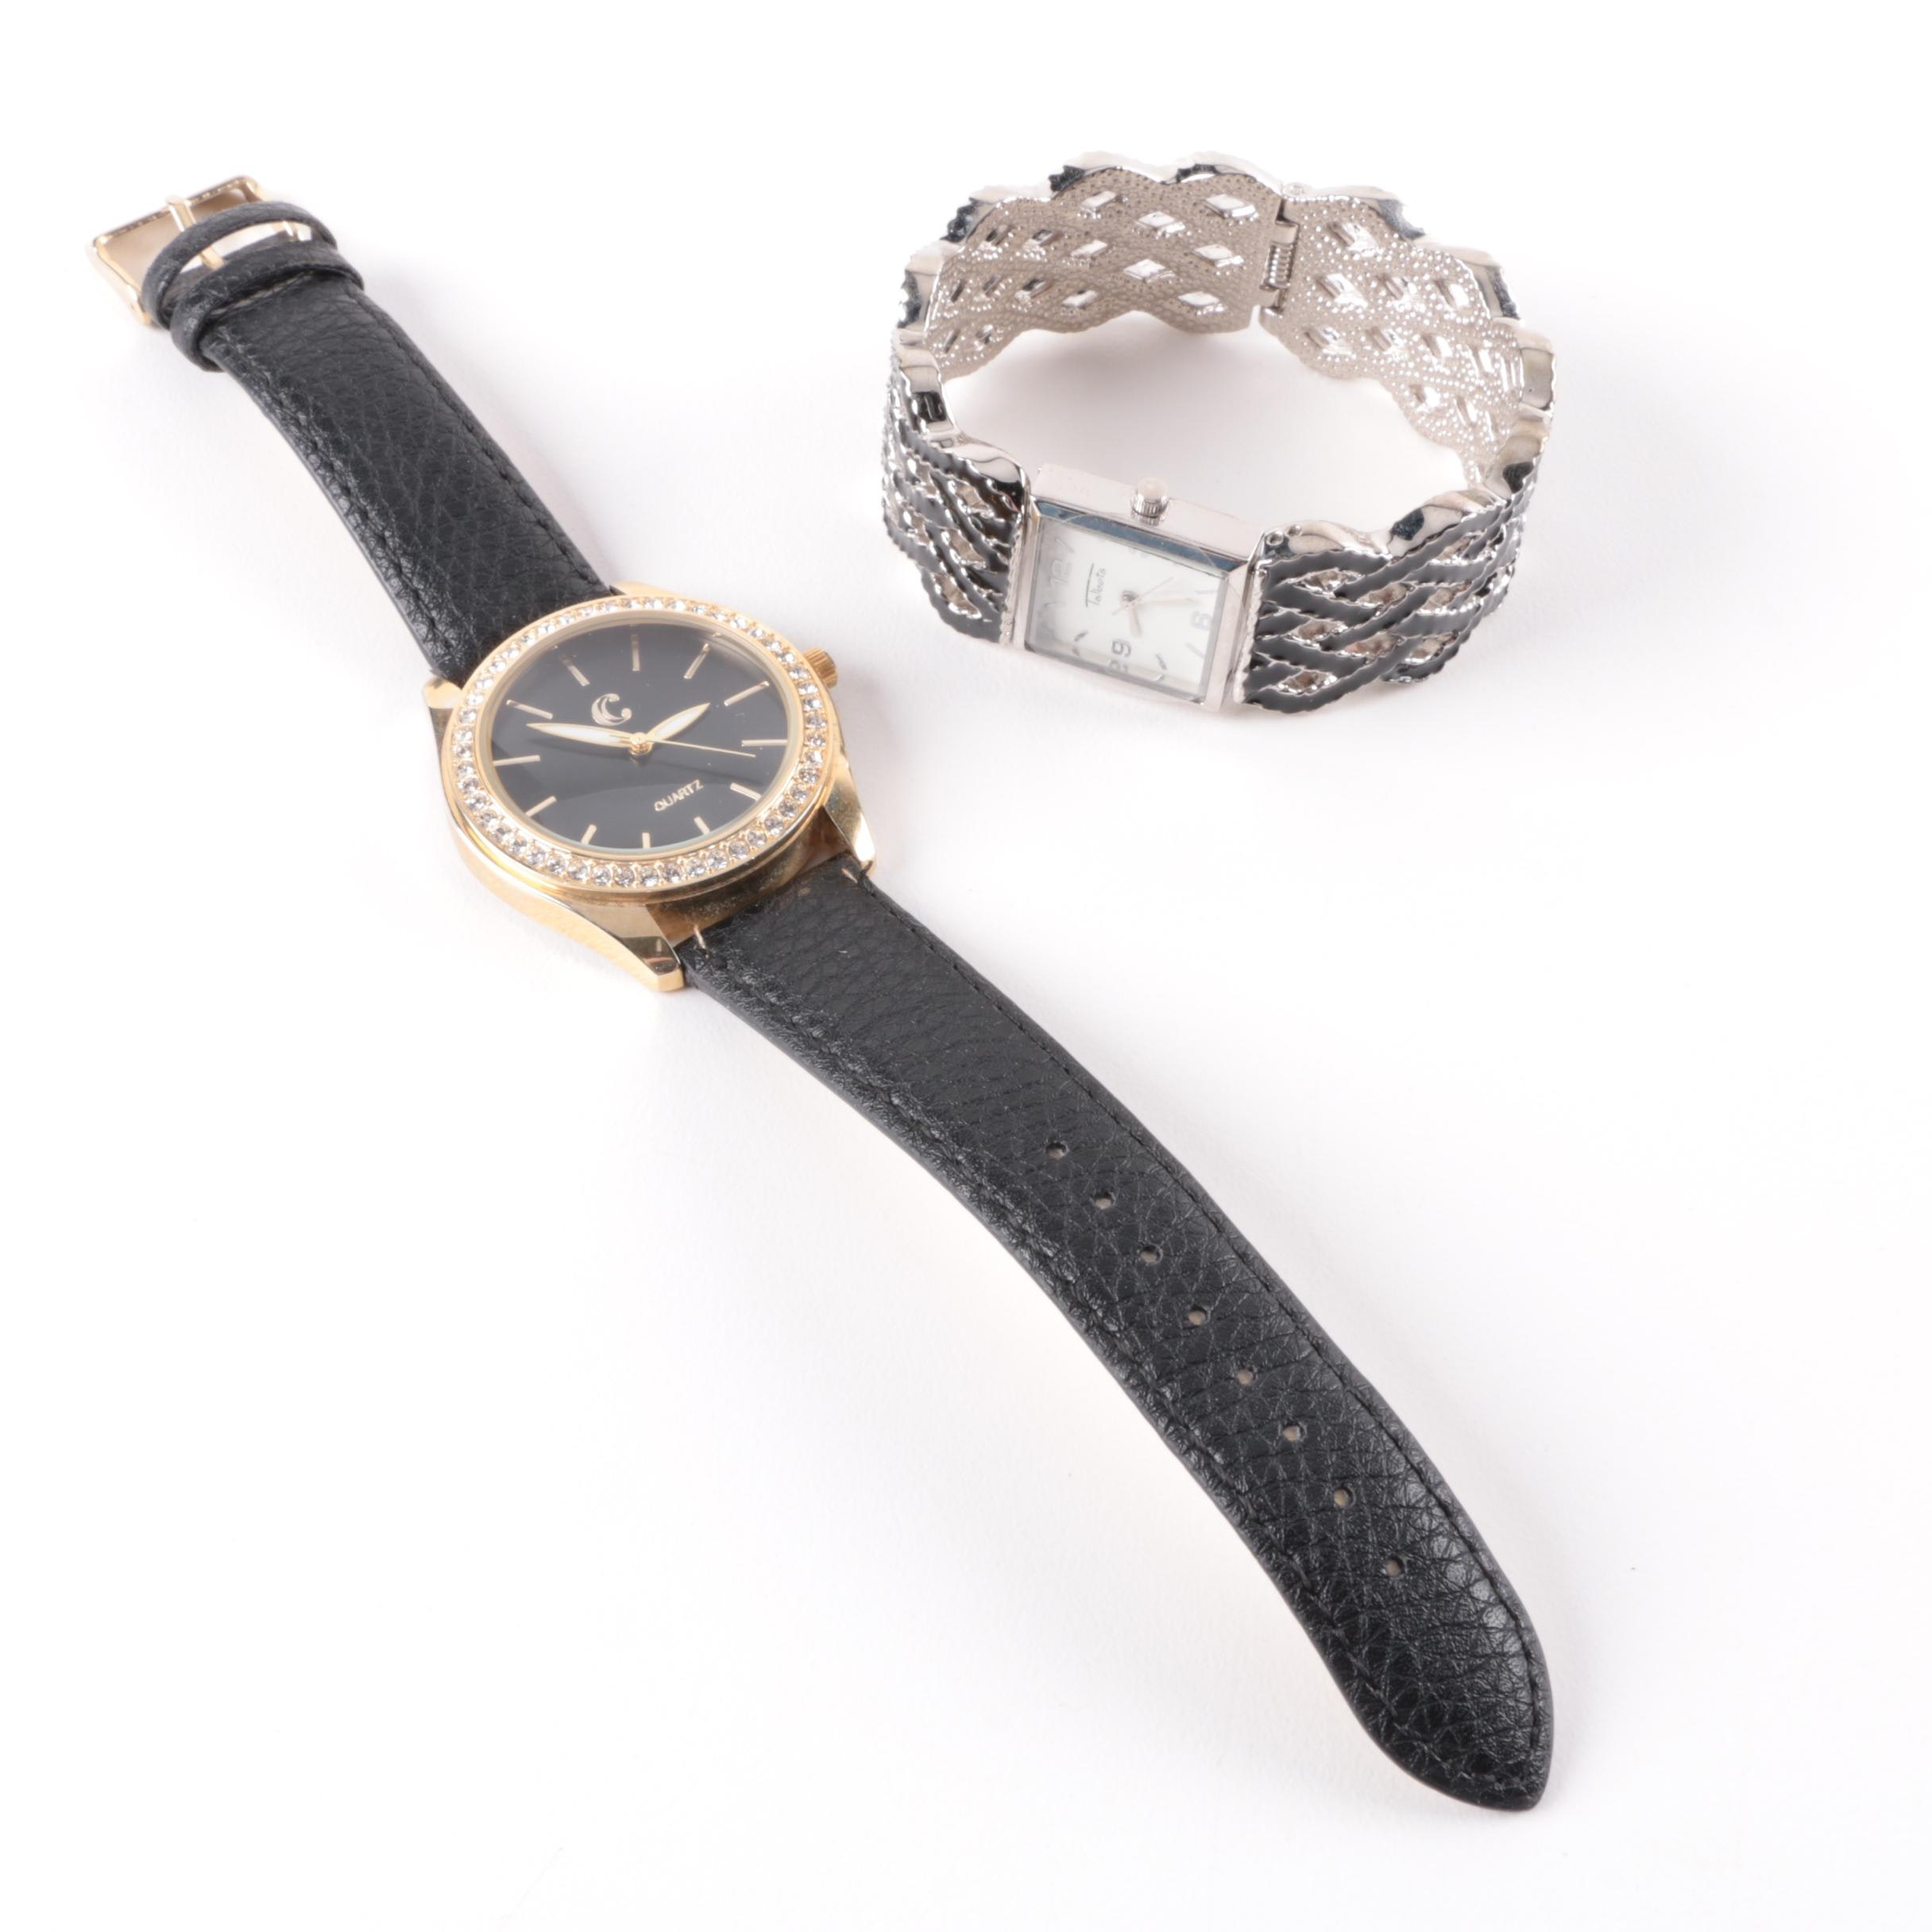 Pair of Wristwatches Including a Hinged Bangle Talbots Watch